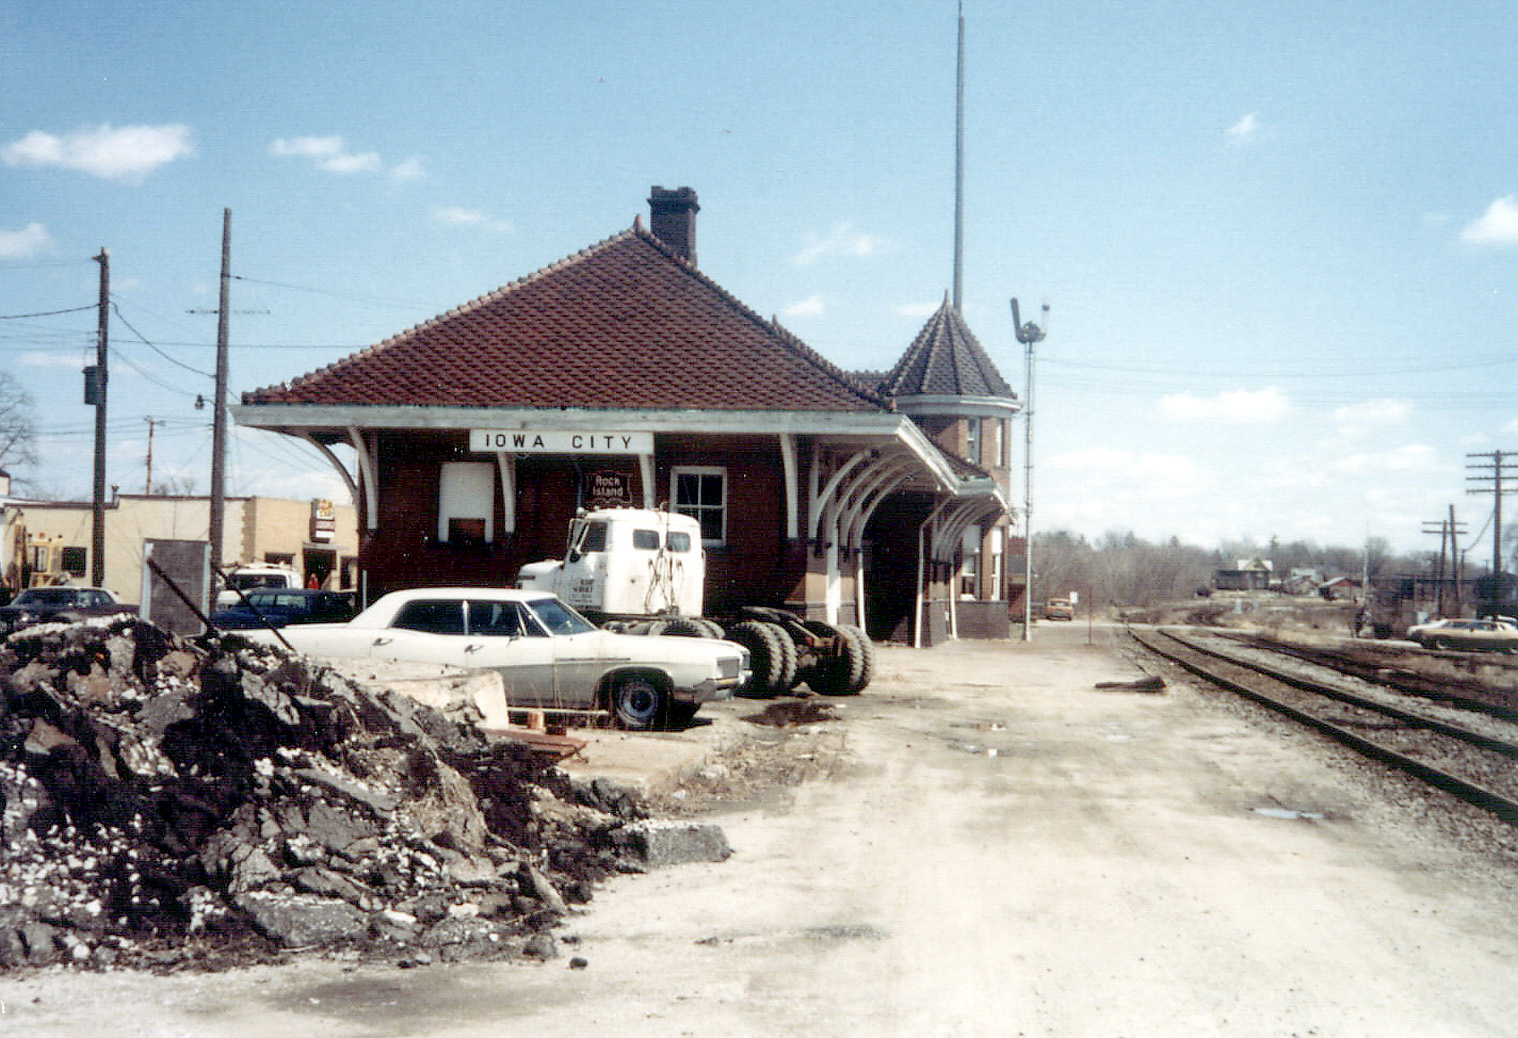 Rock Island depot in Iowa City, April 1980